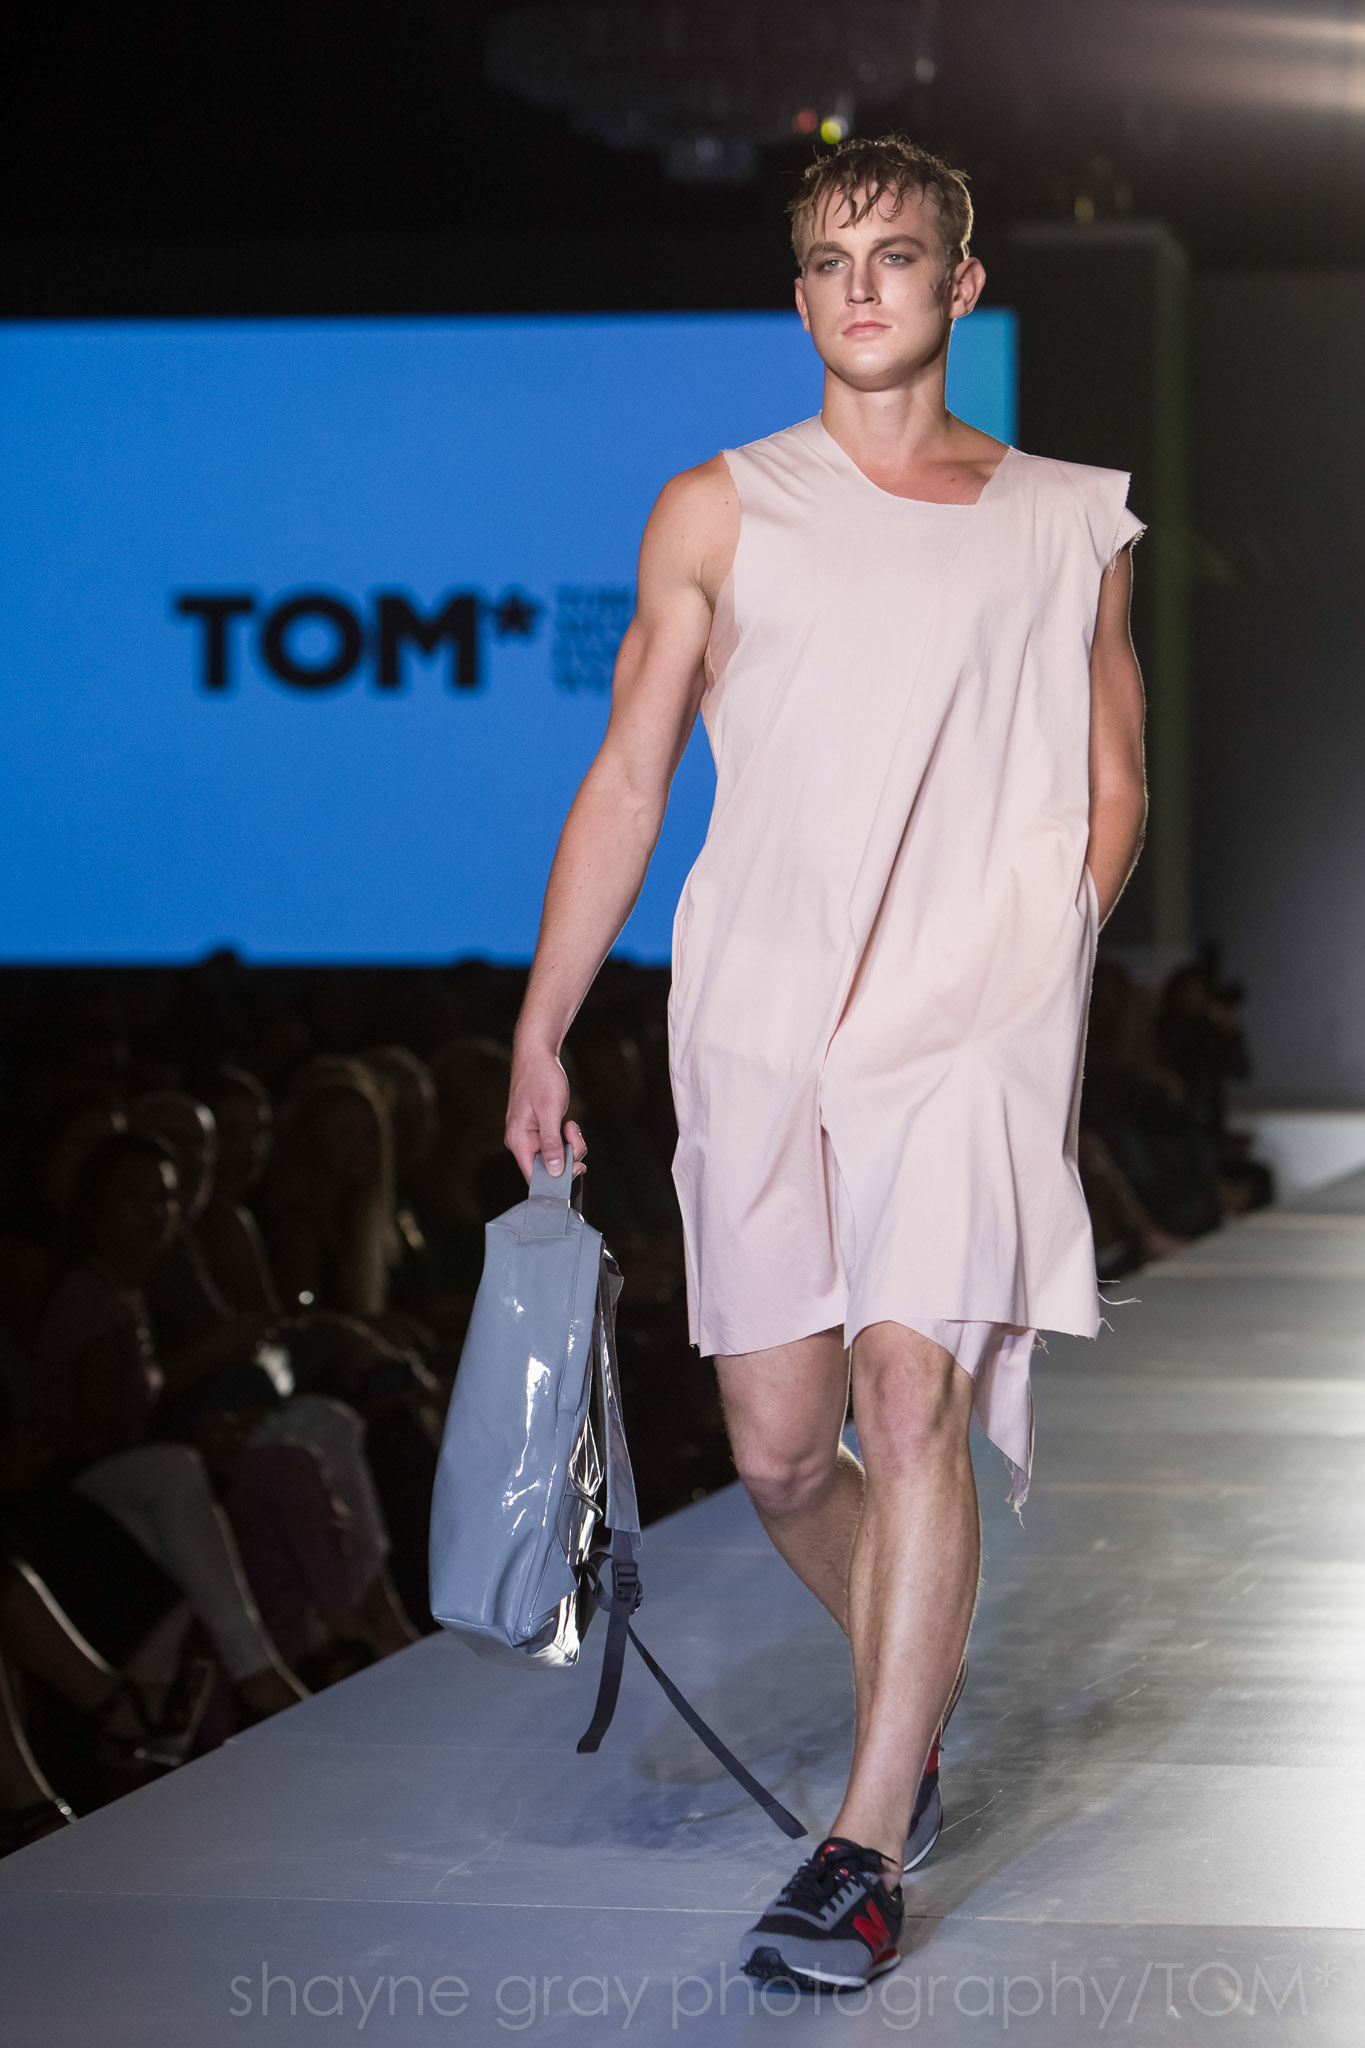 Shayne-Gray-Toronto-men's-fashion_week-TOM-Pedram-Karimi-8877.jpg